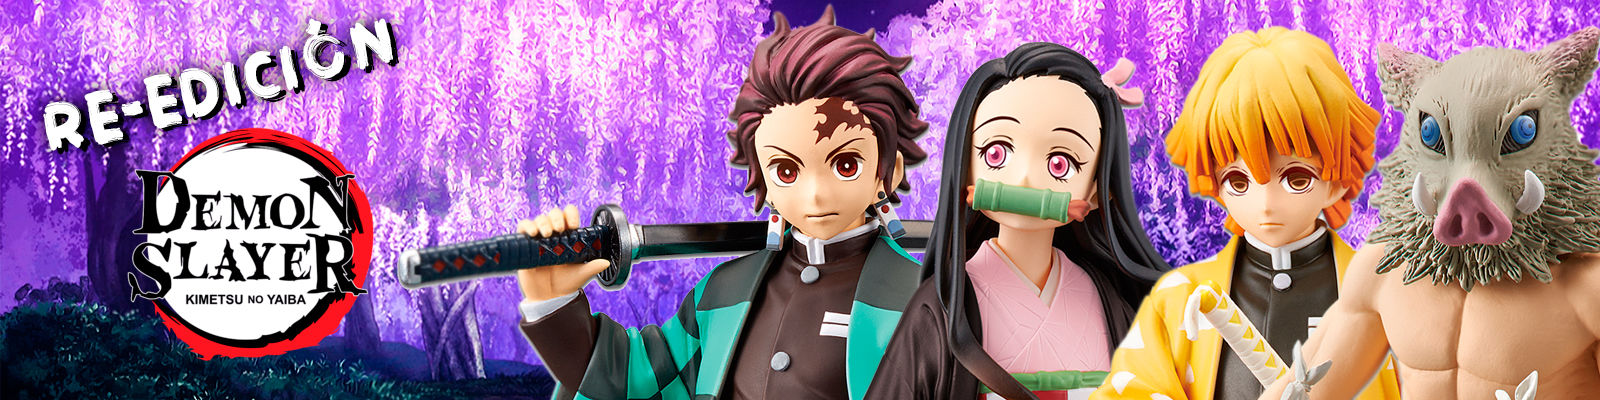 Kimetsu-no-yaiba-re-edition-banpresto